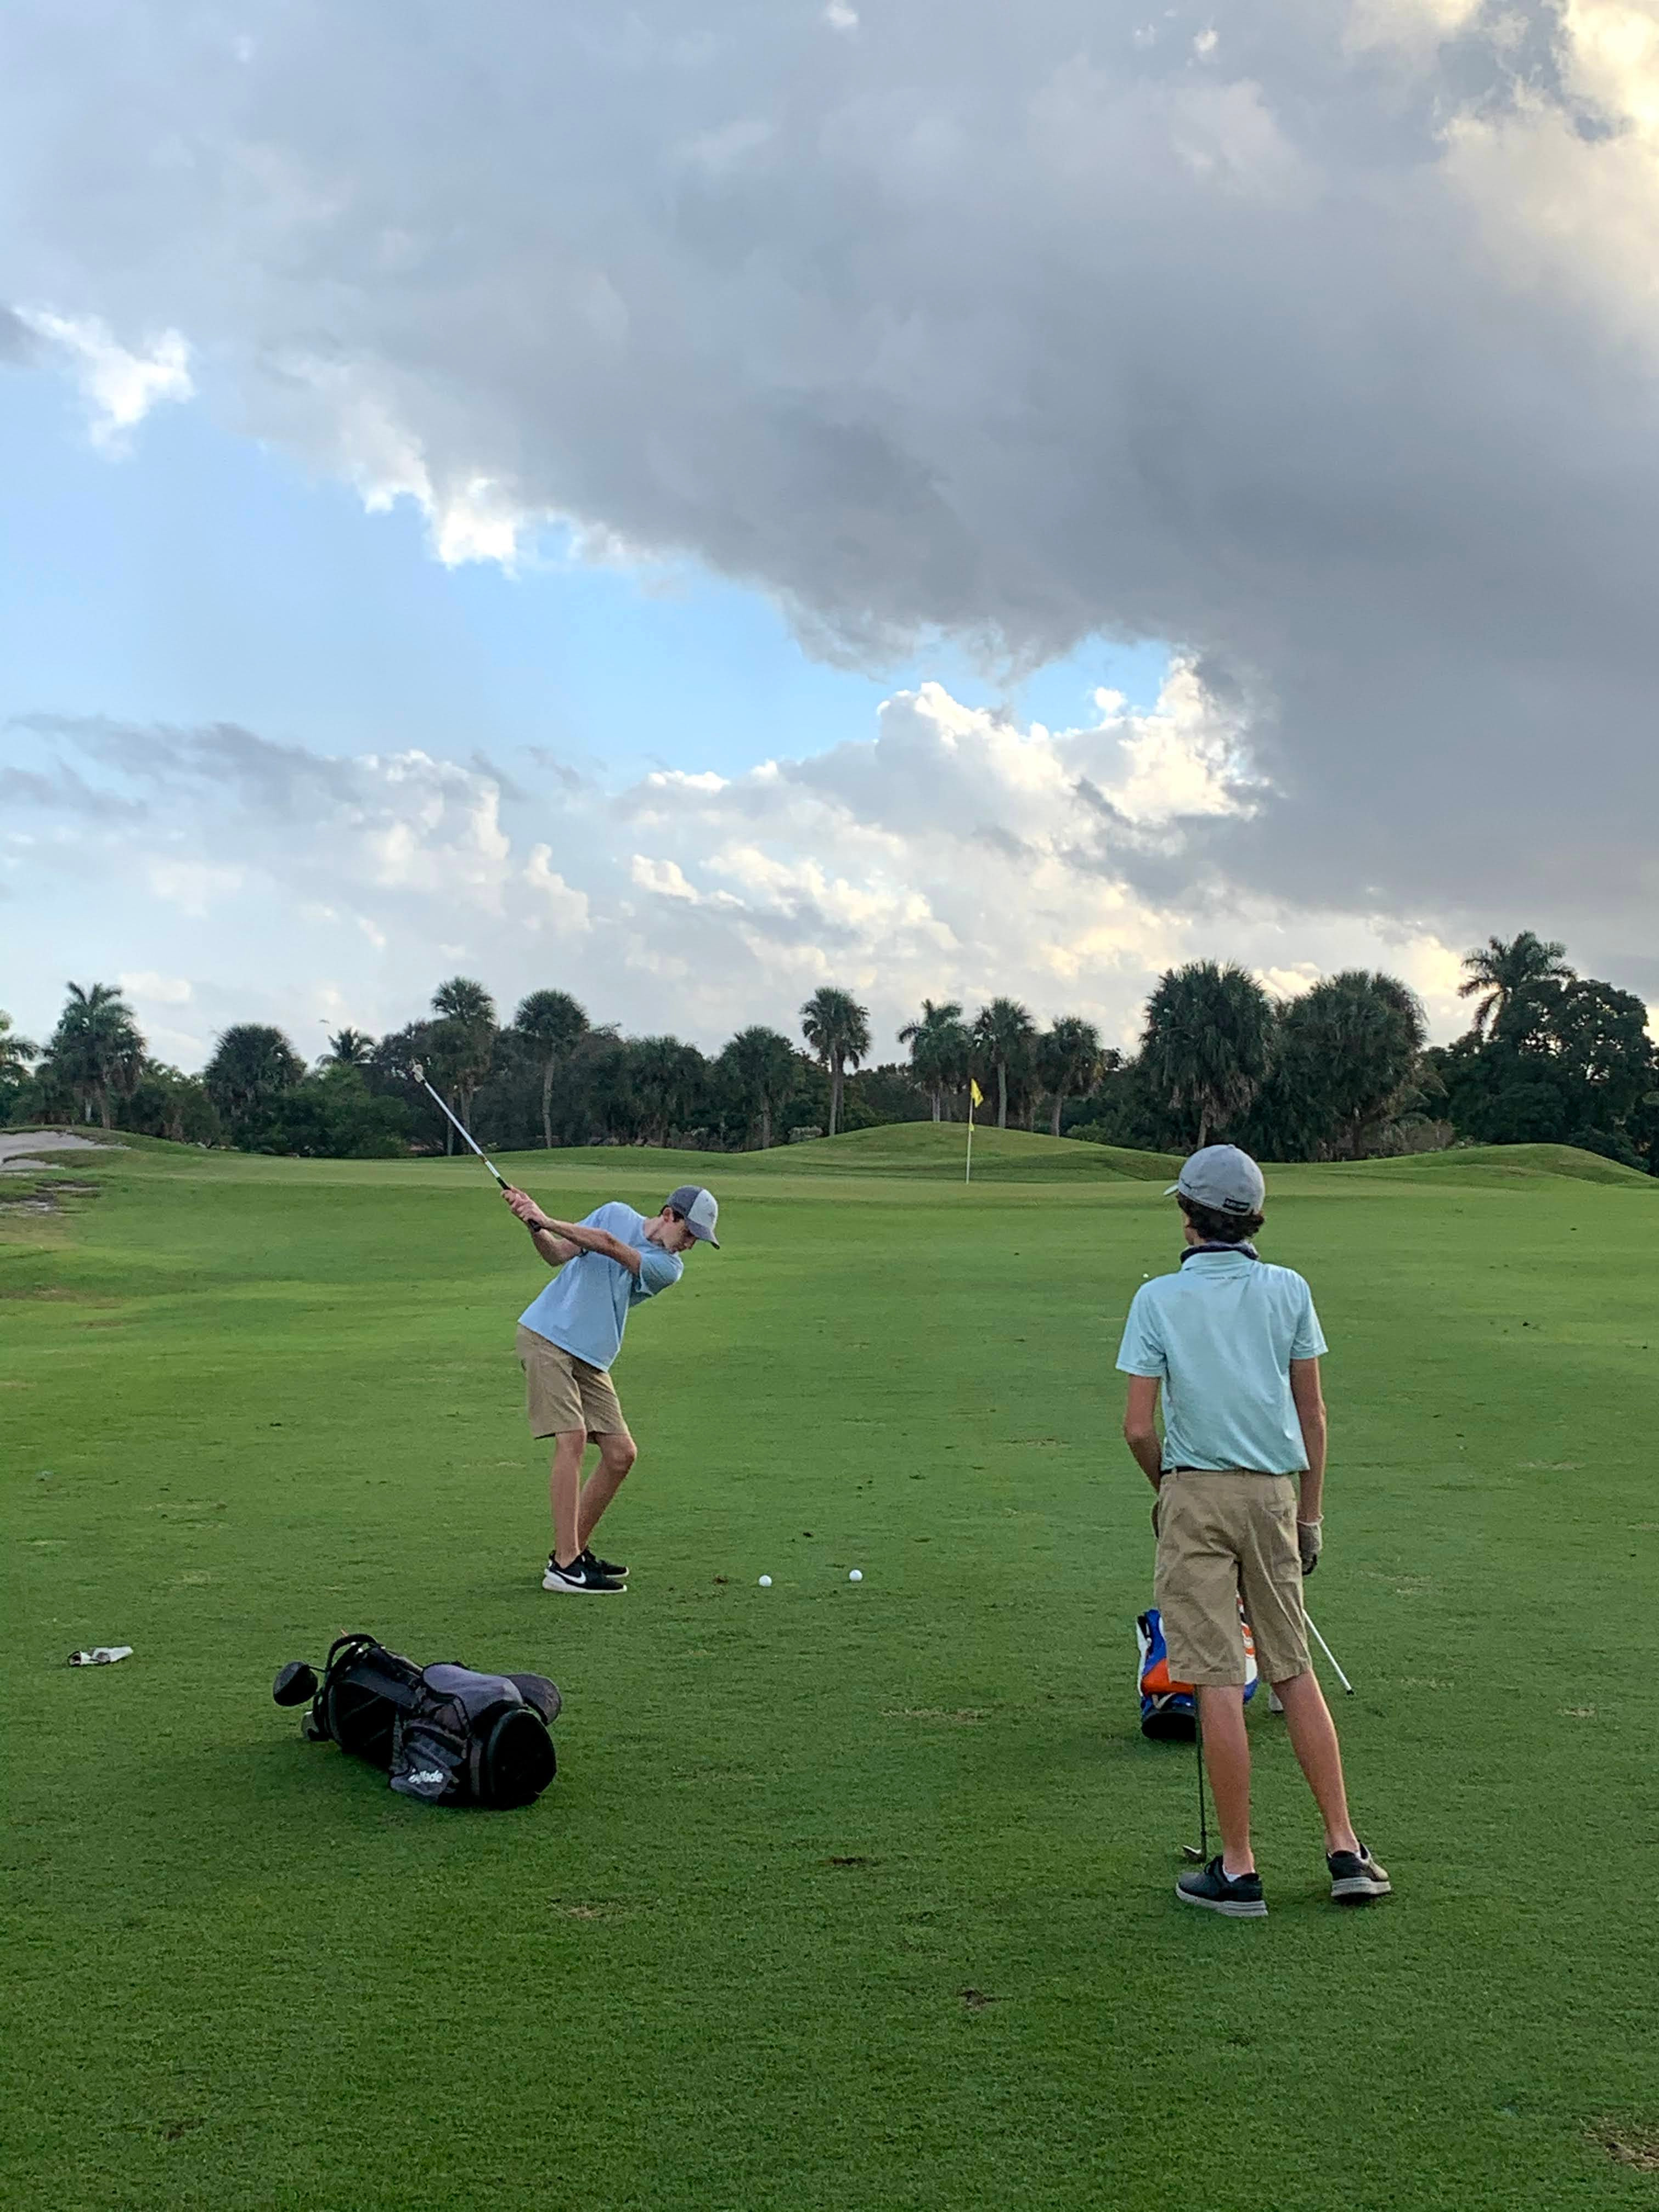 Middle School Golf (ages 11-14)